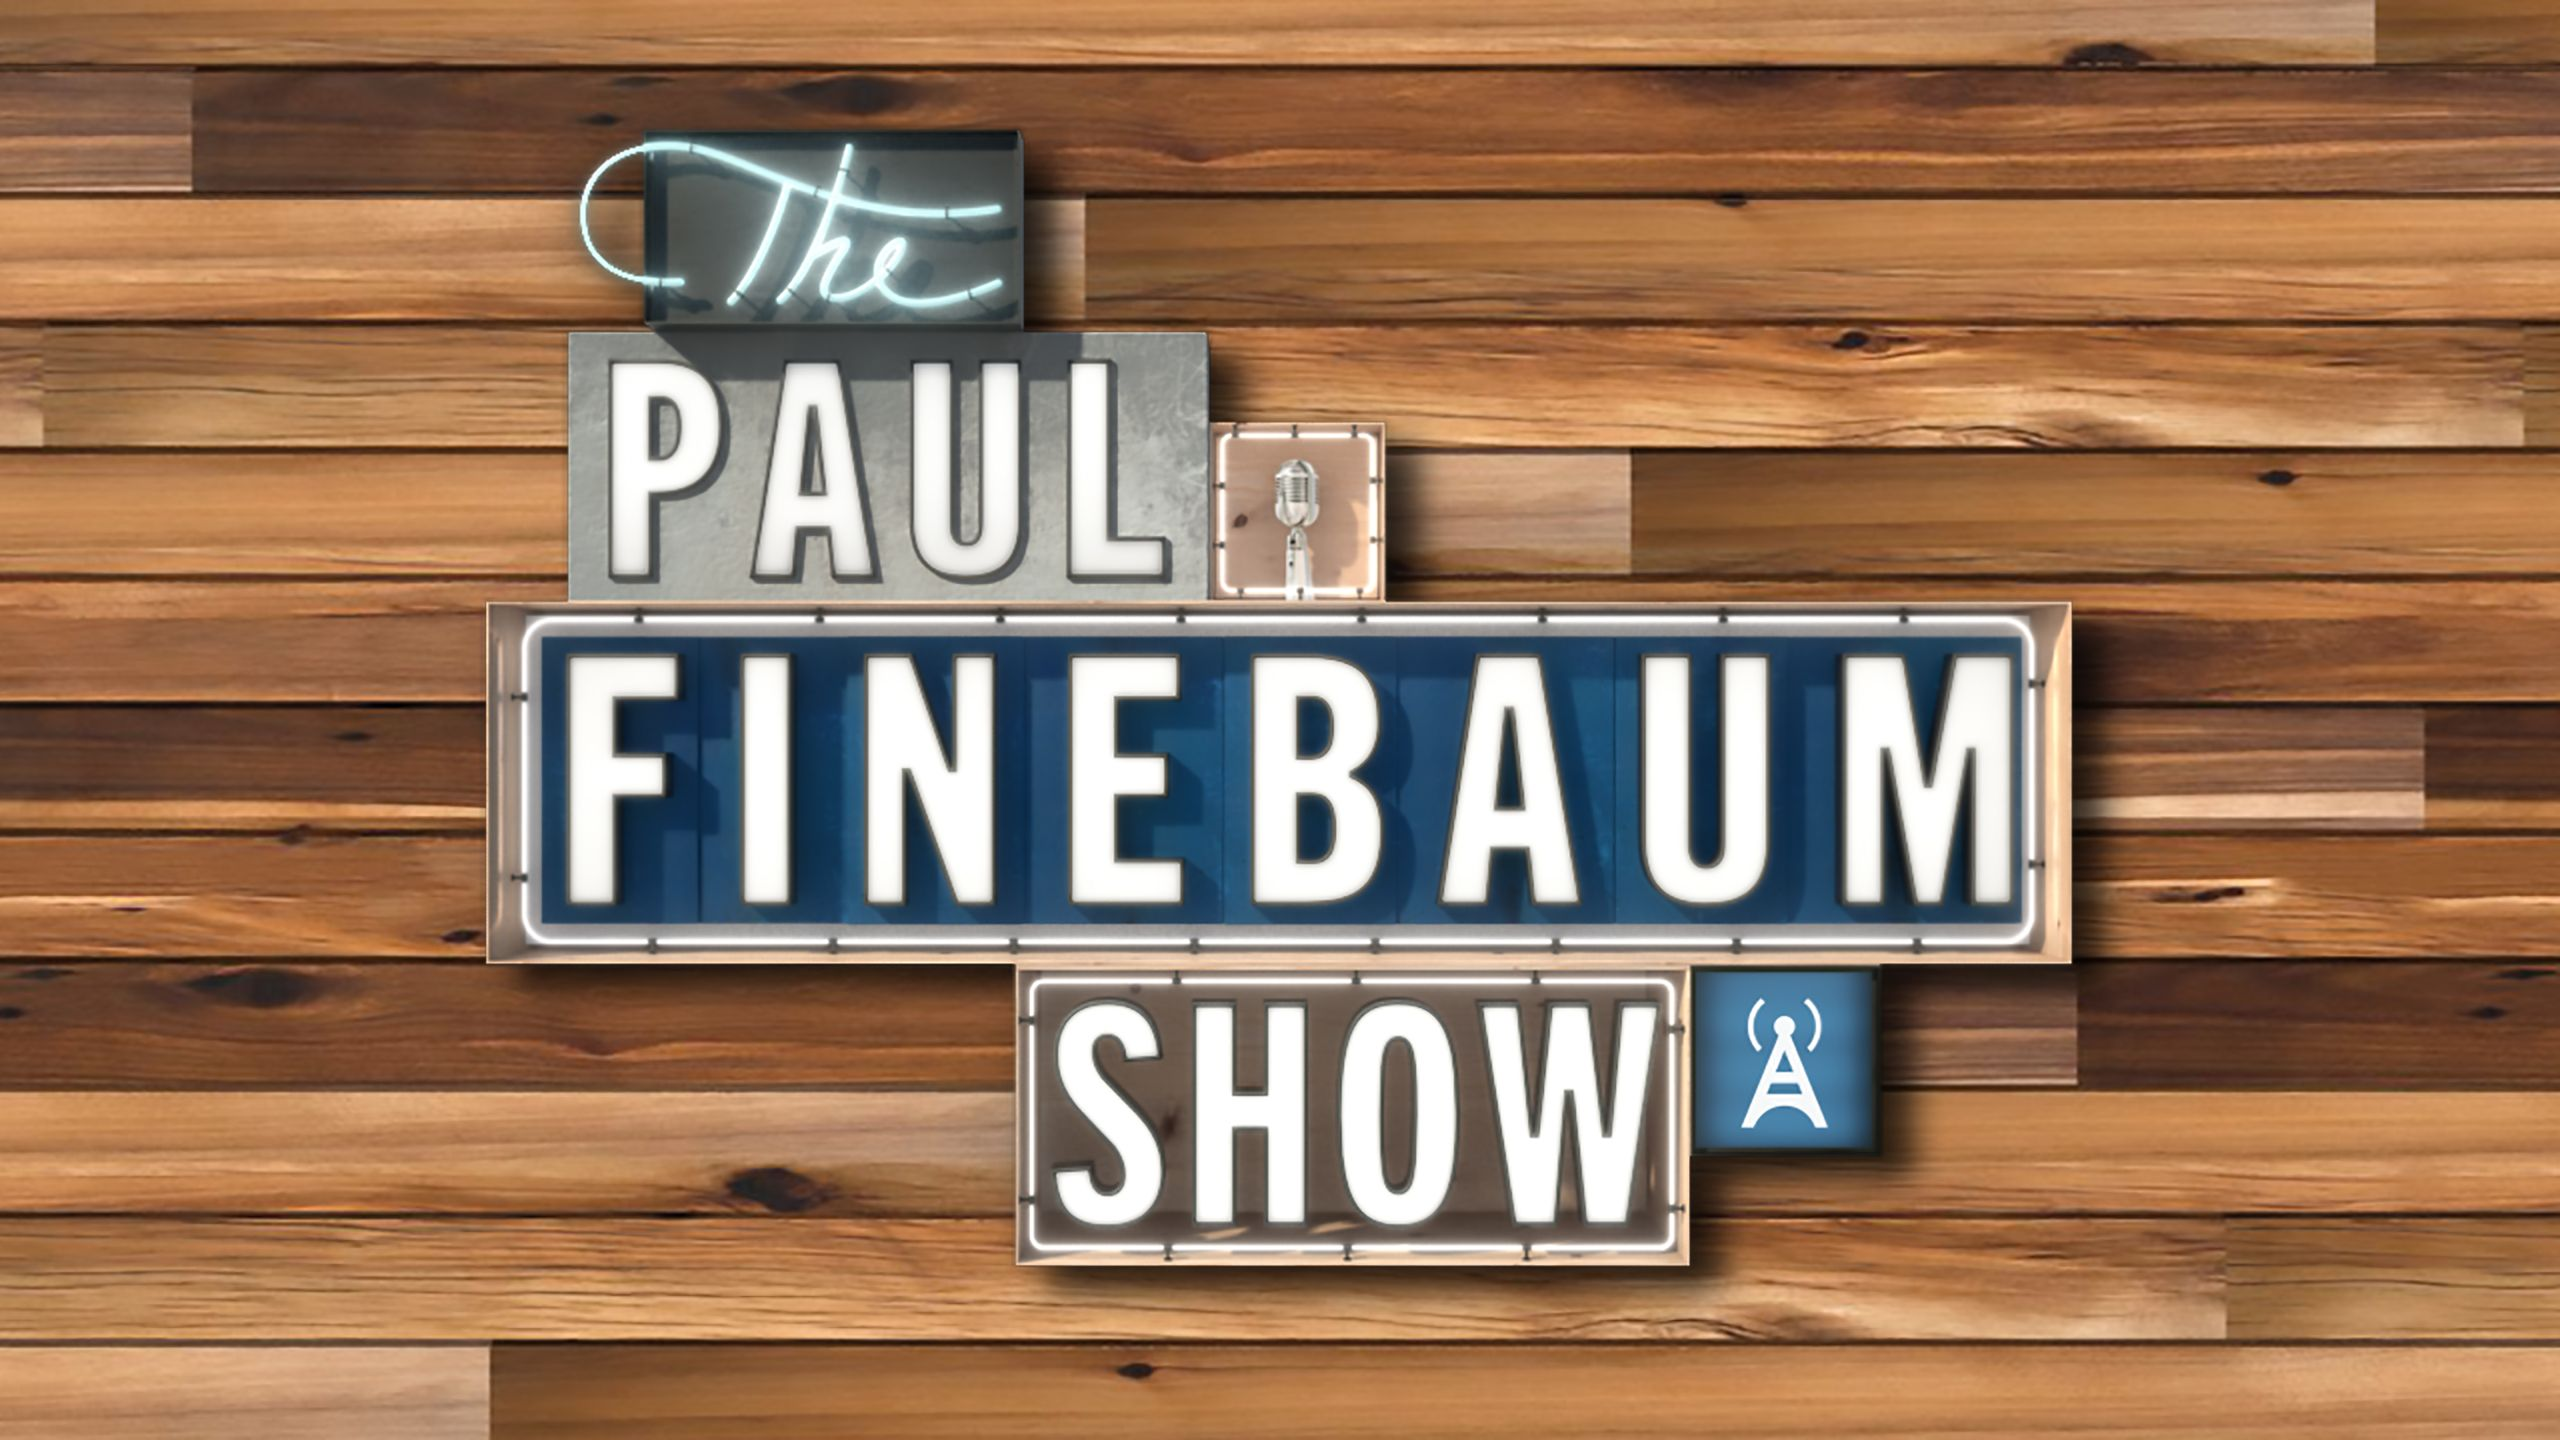 Mon, 11/20 - The Paul Finebaum Show Presented by Regions Bank